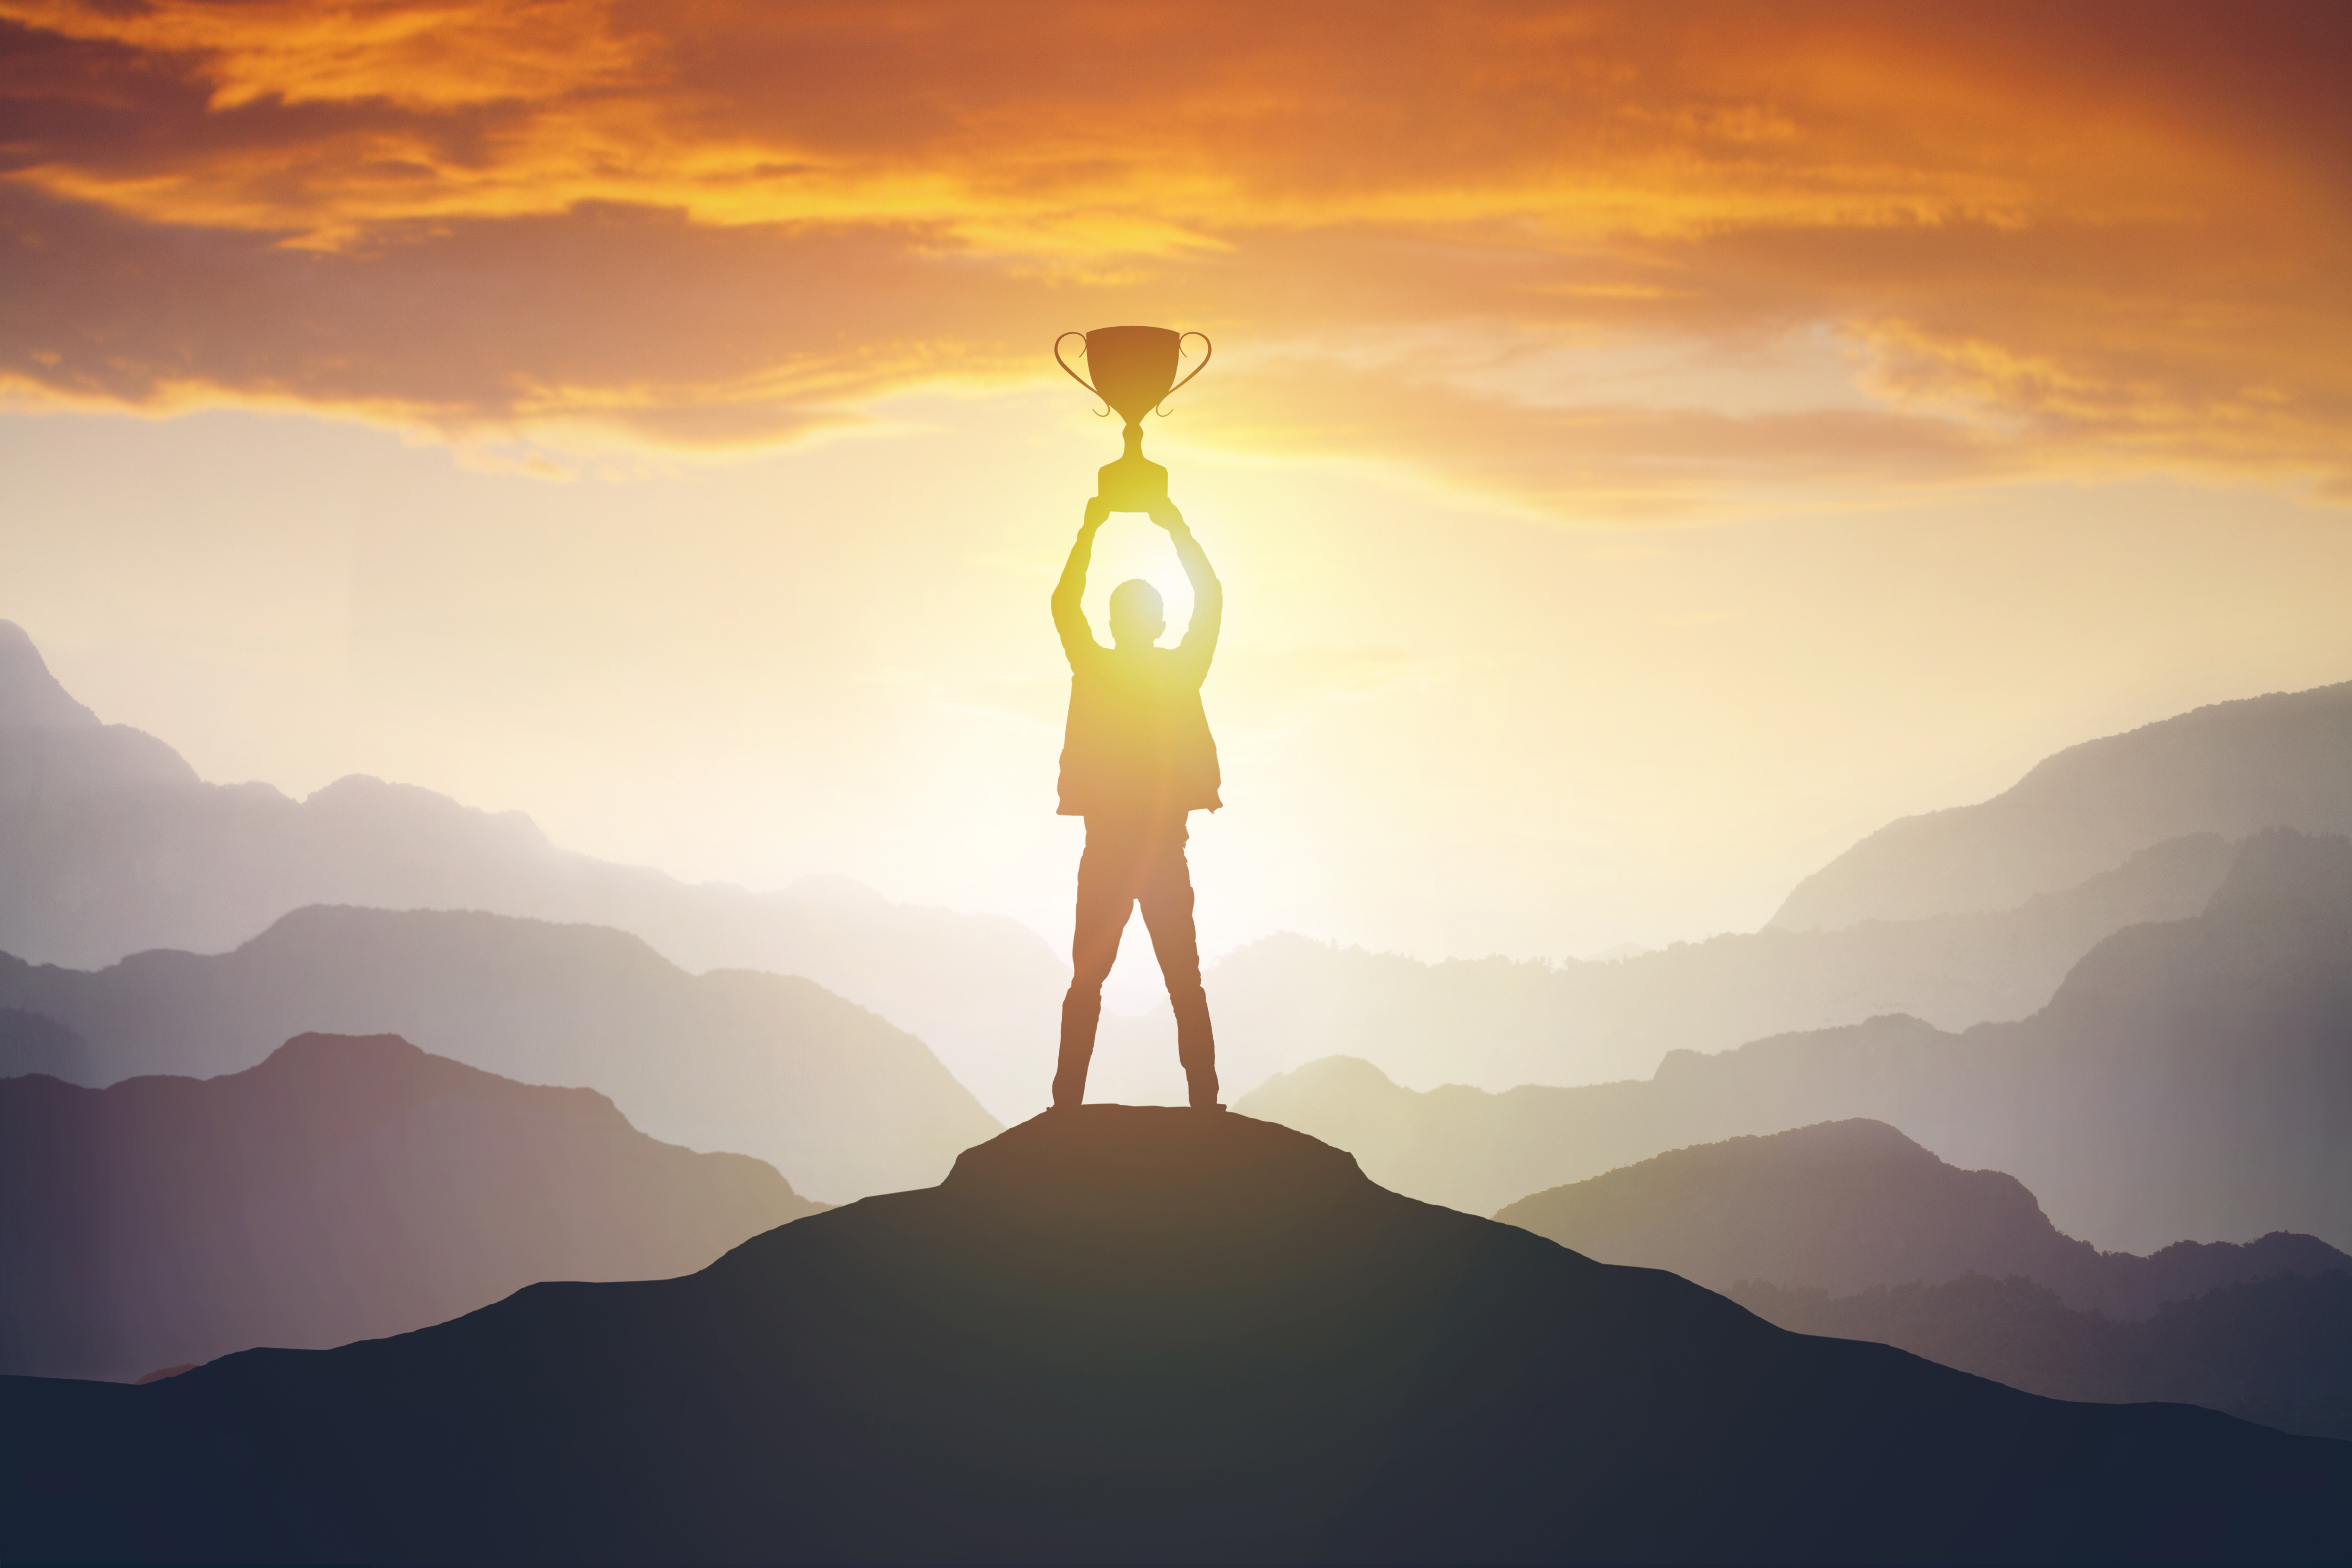 silhouette_of_a_man_holding_a_trophy_at_sunset